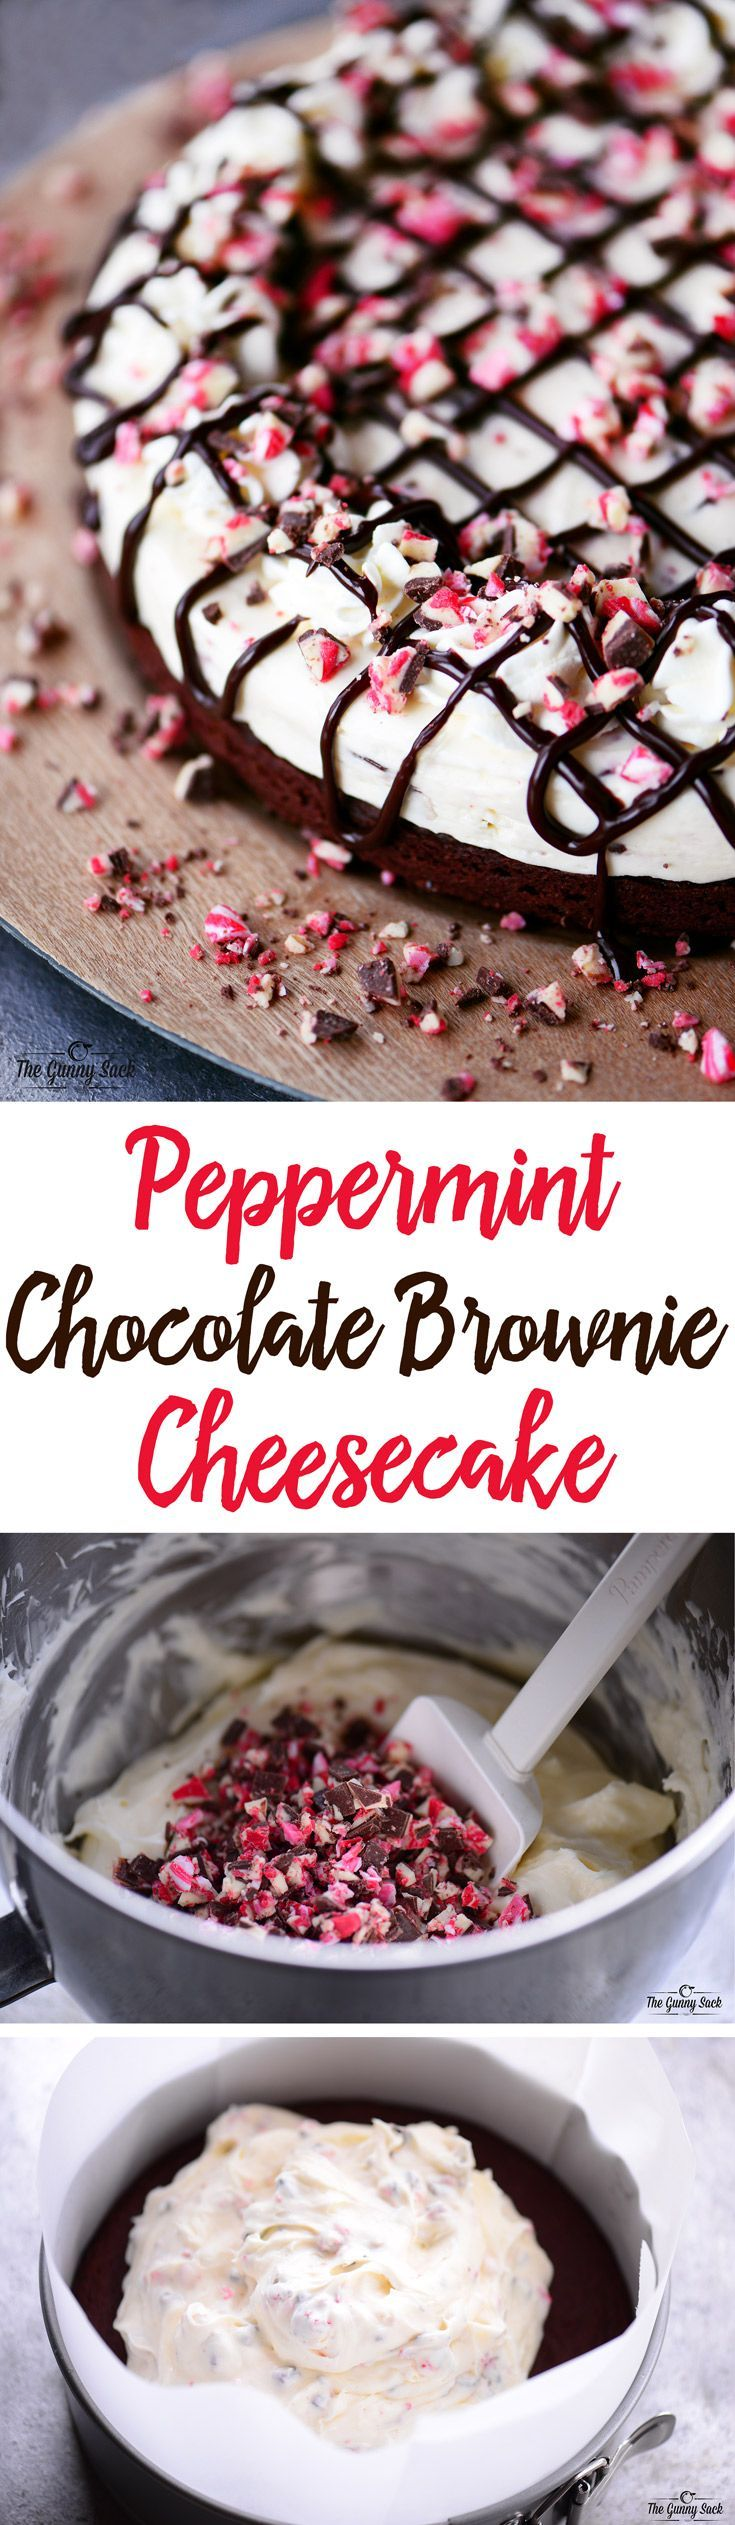 This Peppermint Chocolate Brownie Cheesecake recipe is perfect for Christmas. The cool, creamy, peppermint cheesecake is dotted with crunchy bits of peppermint bark and is finished off with a chewy brownie crust.